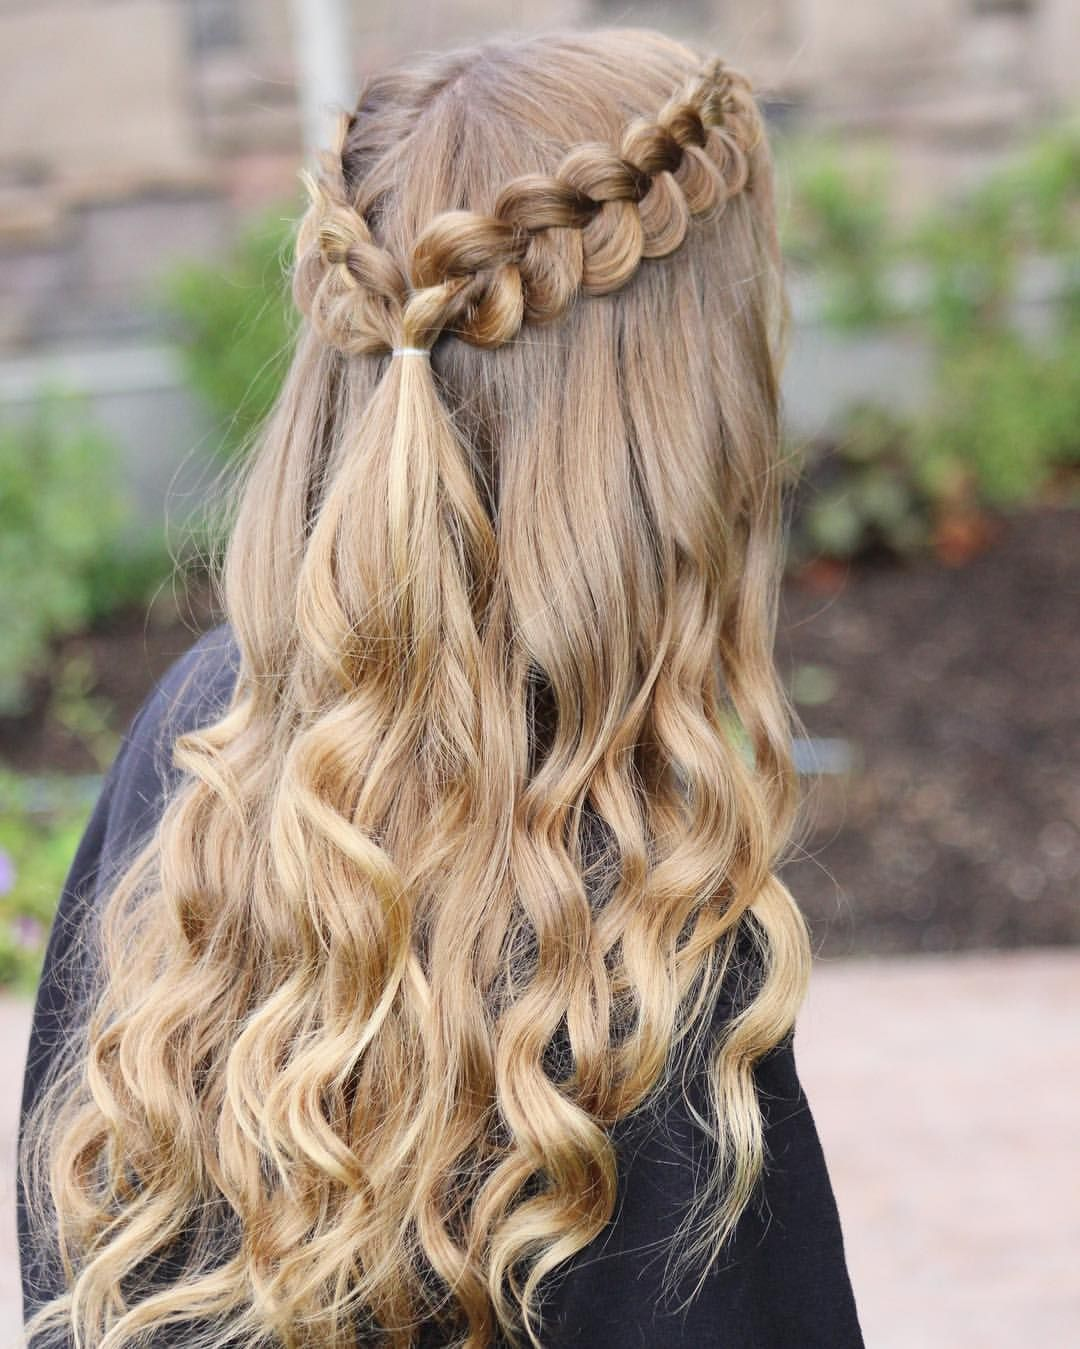 38+ old fashioned hoco hair styles picture collection